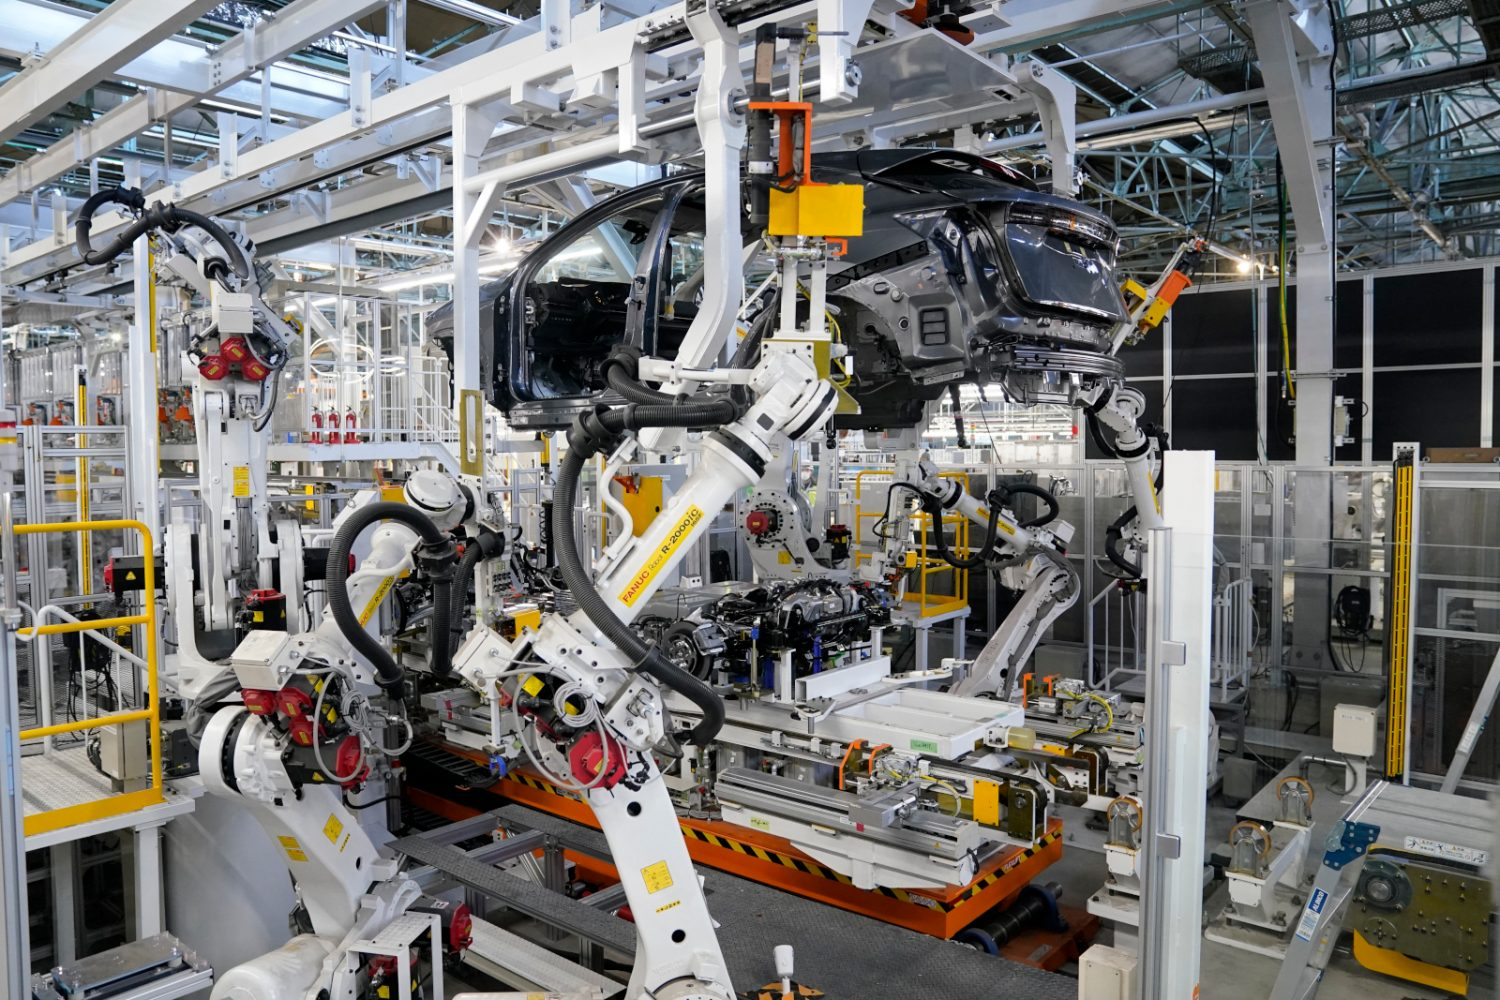 Production of the Nissan Ariya in the Intelligent Factory